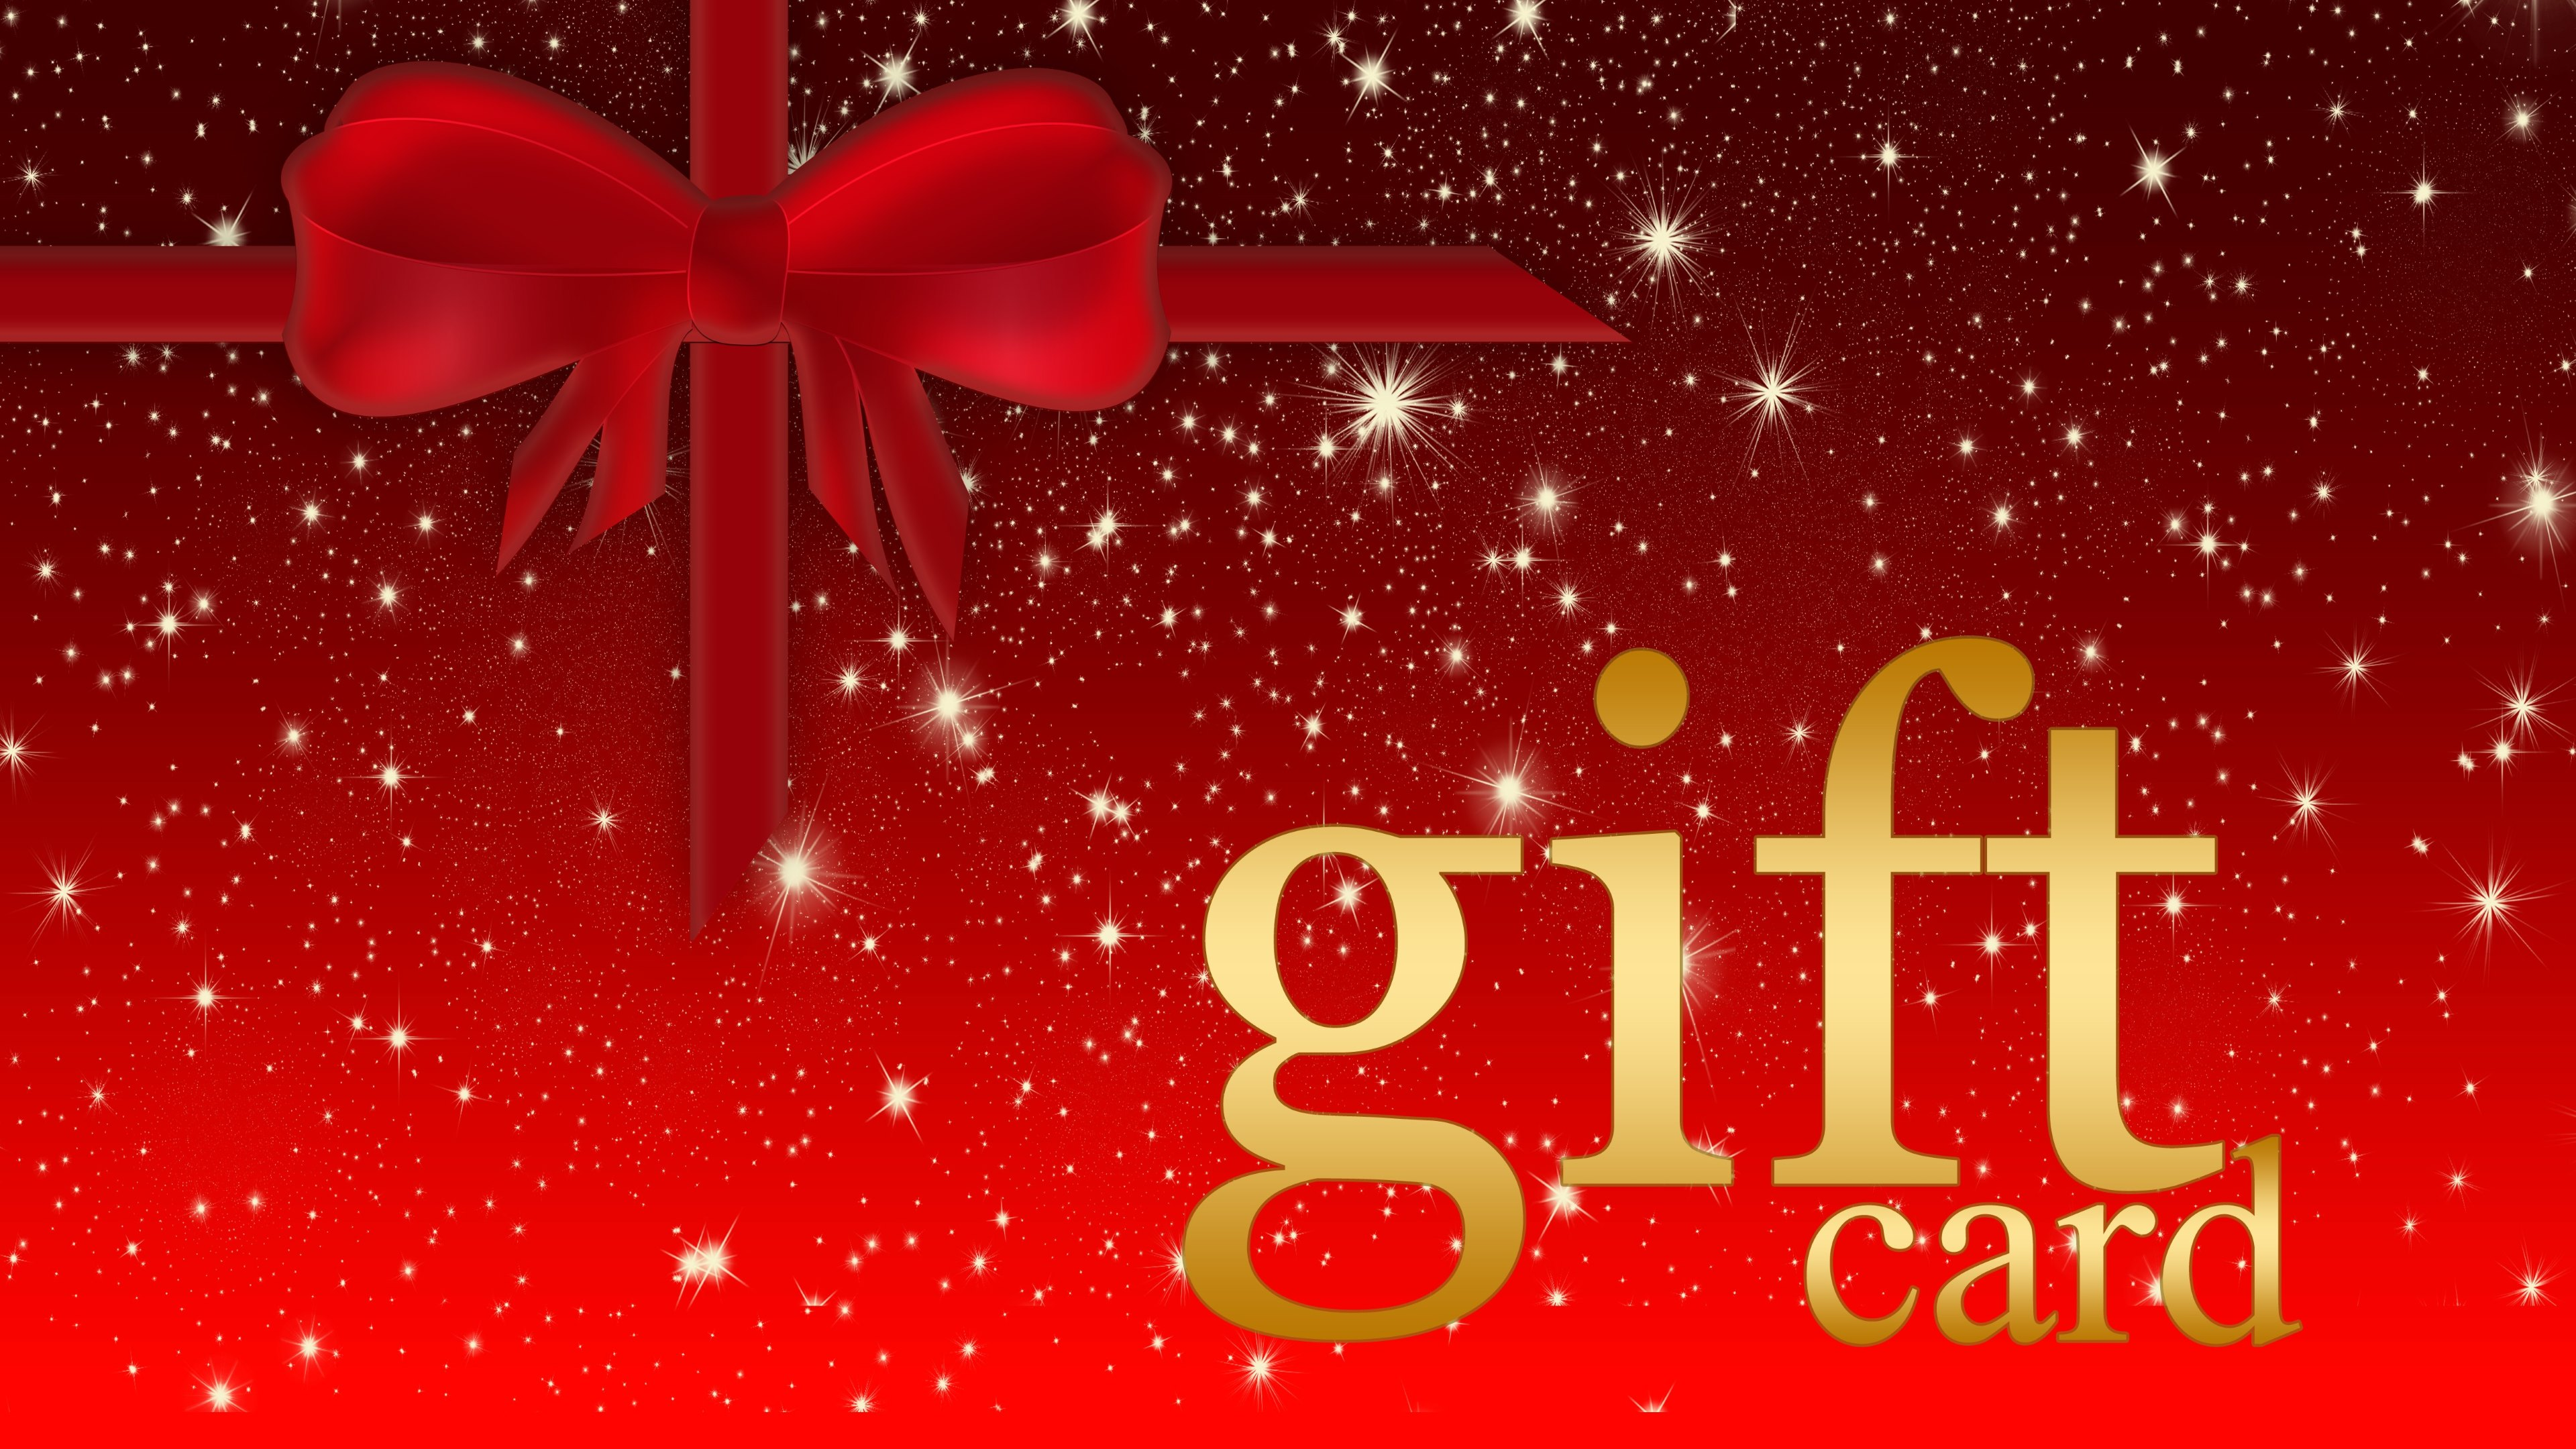 Christmas gift card pictures all ideas about christmas and happy christmas gift card wallpapers hd wallpapers negle Images